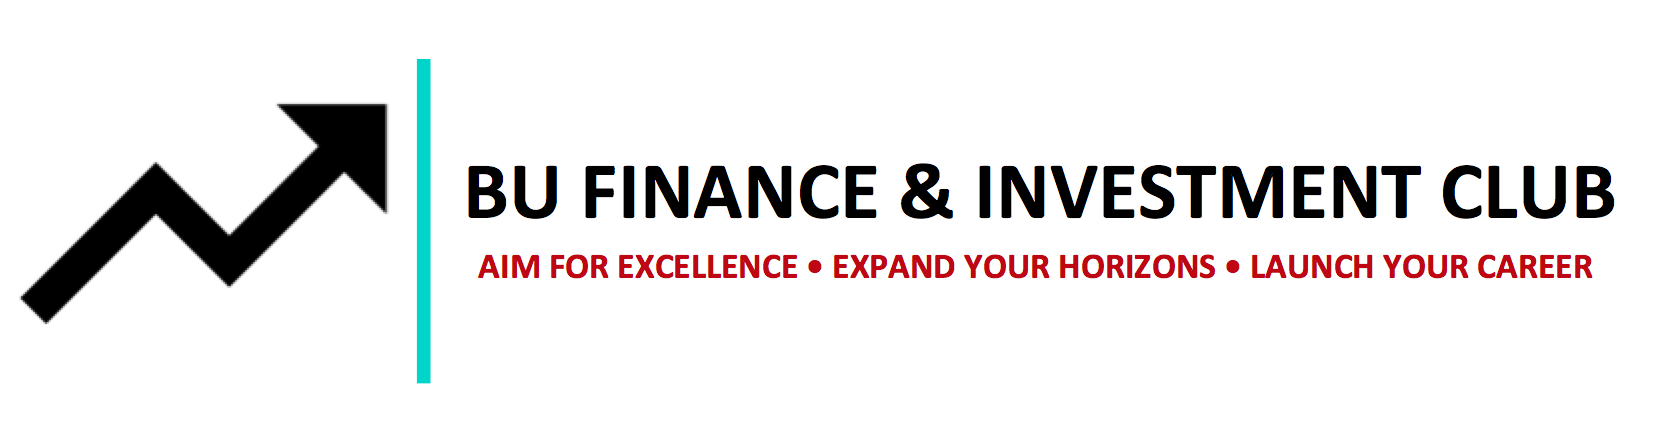 BU Finance and Investment Club